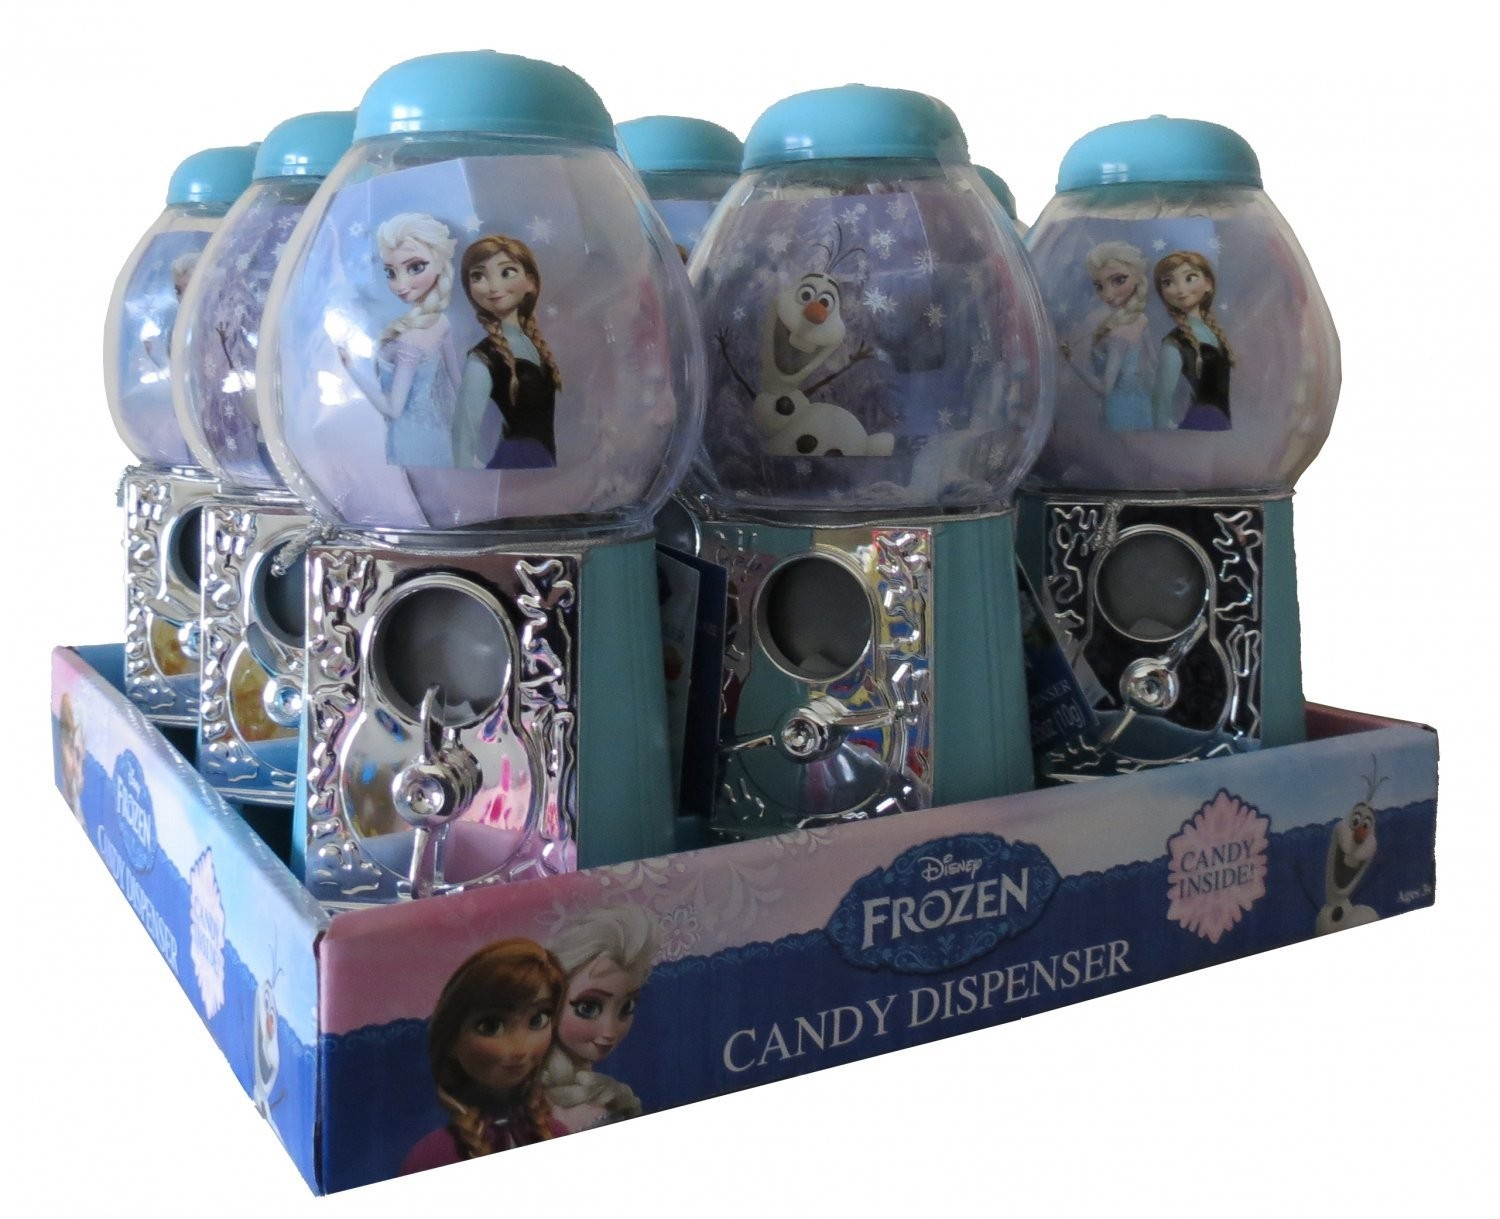 Disney 7 inch Dispenser with Candy featuring Disney's Frozen